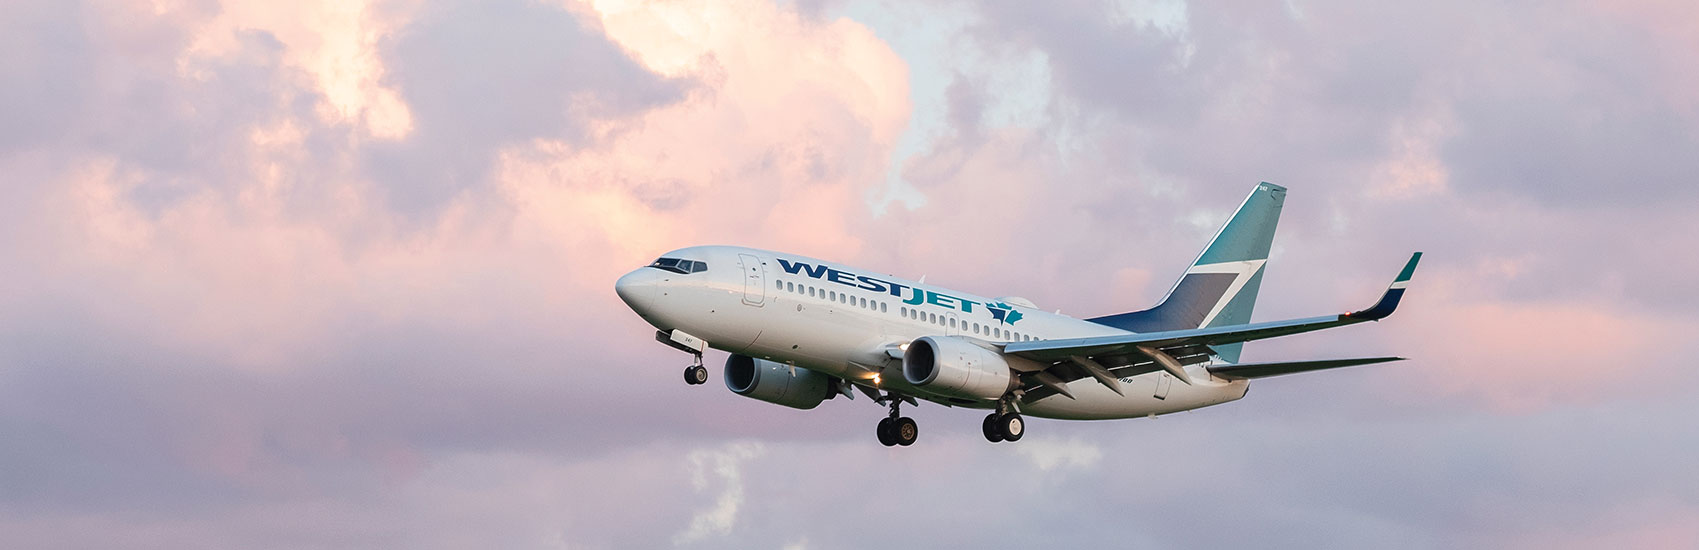 WestJet Health and Safety Policies 0